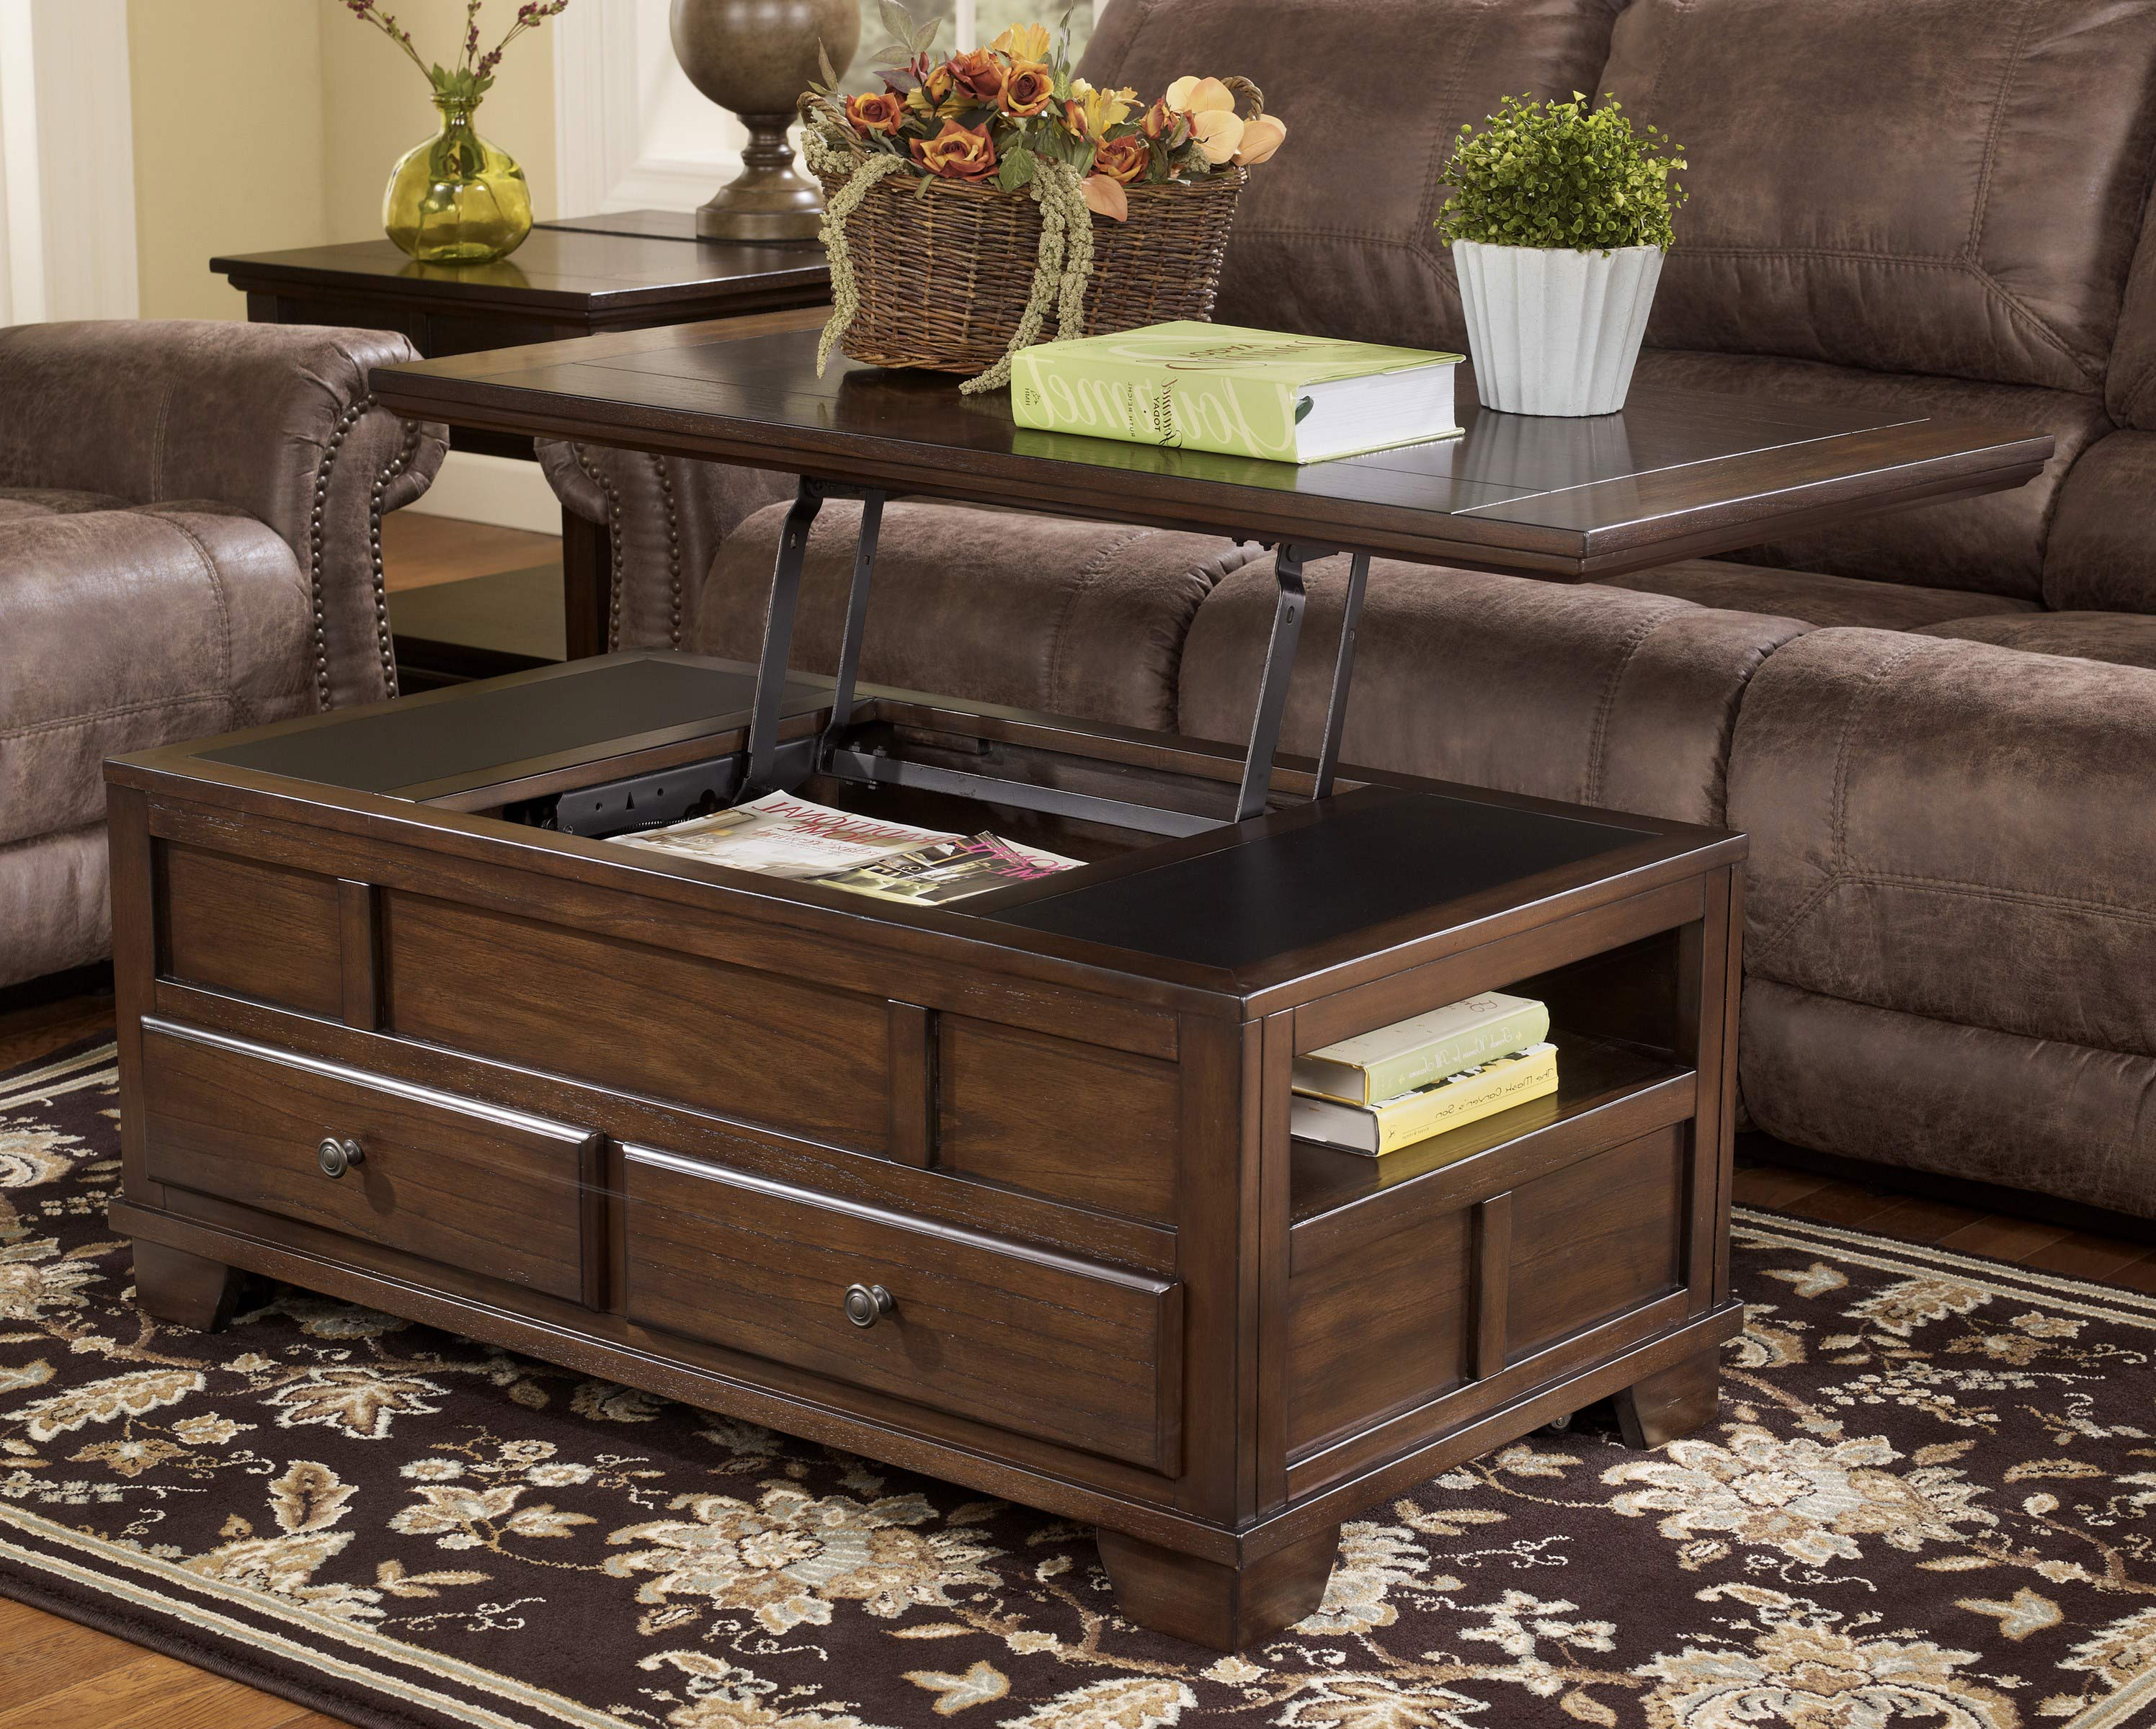 Top Lift Coffee Table Lift Top Coffee Tables With Storage Roy Home Design